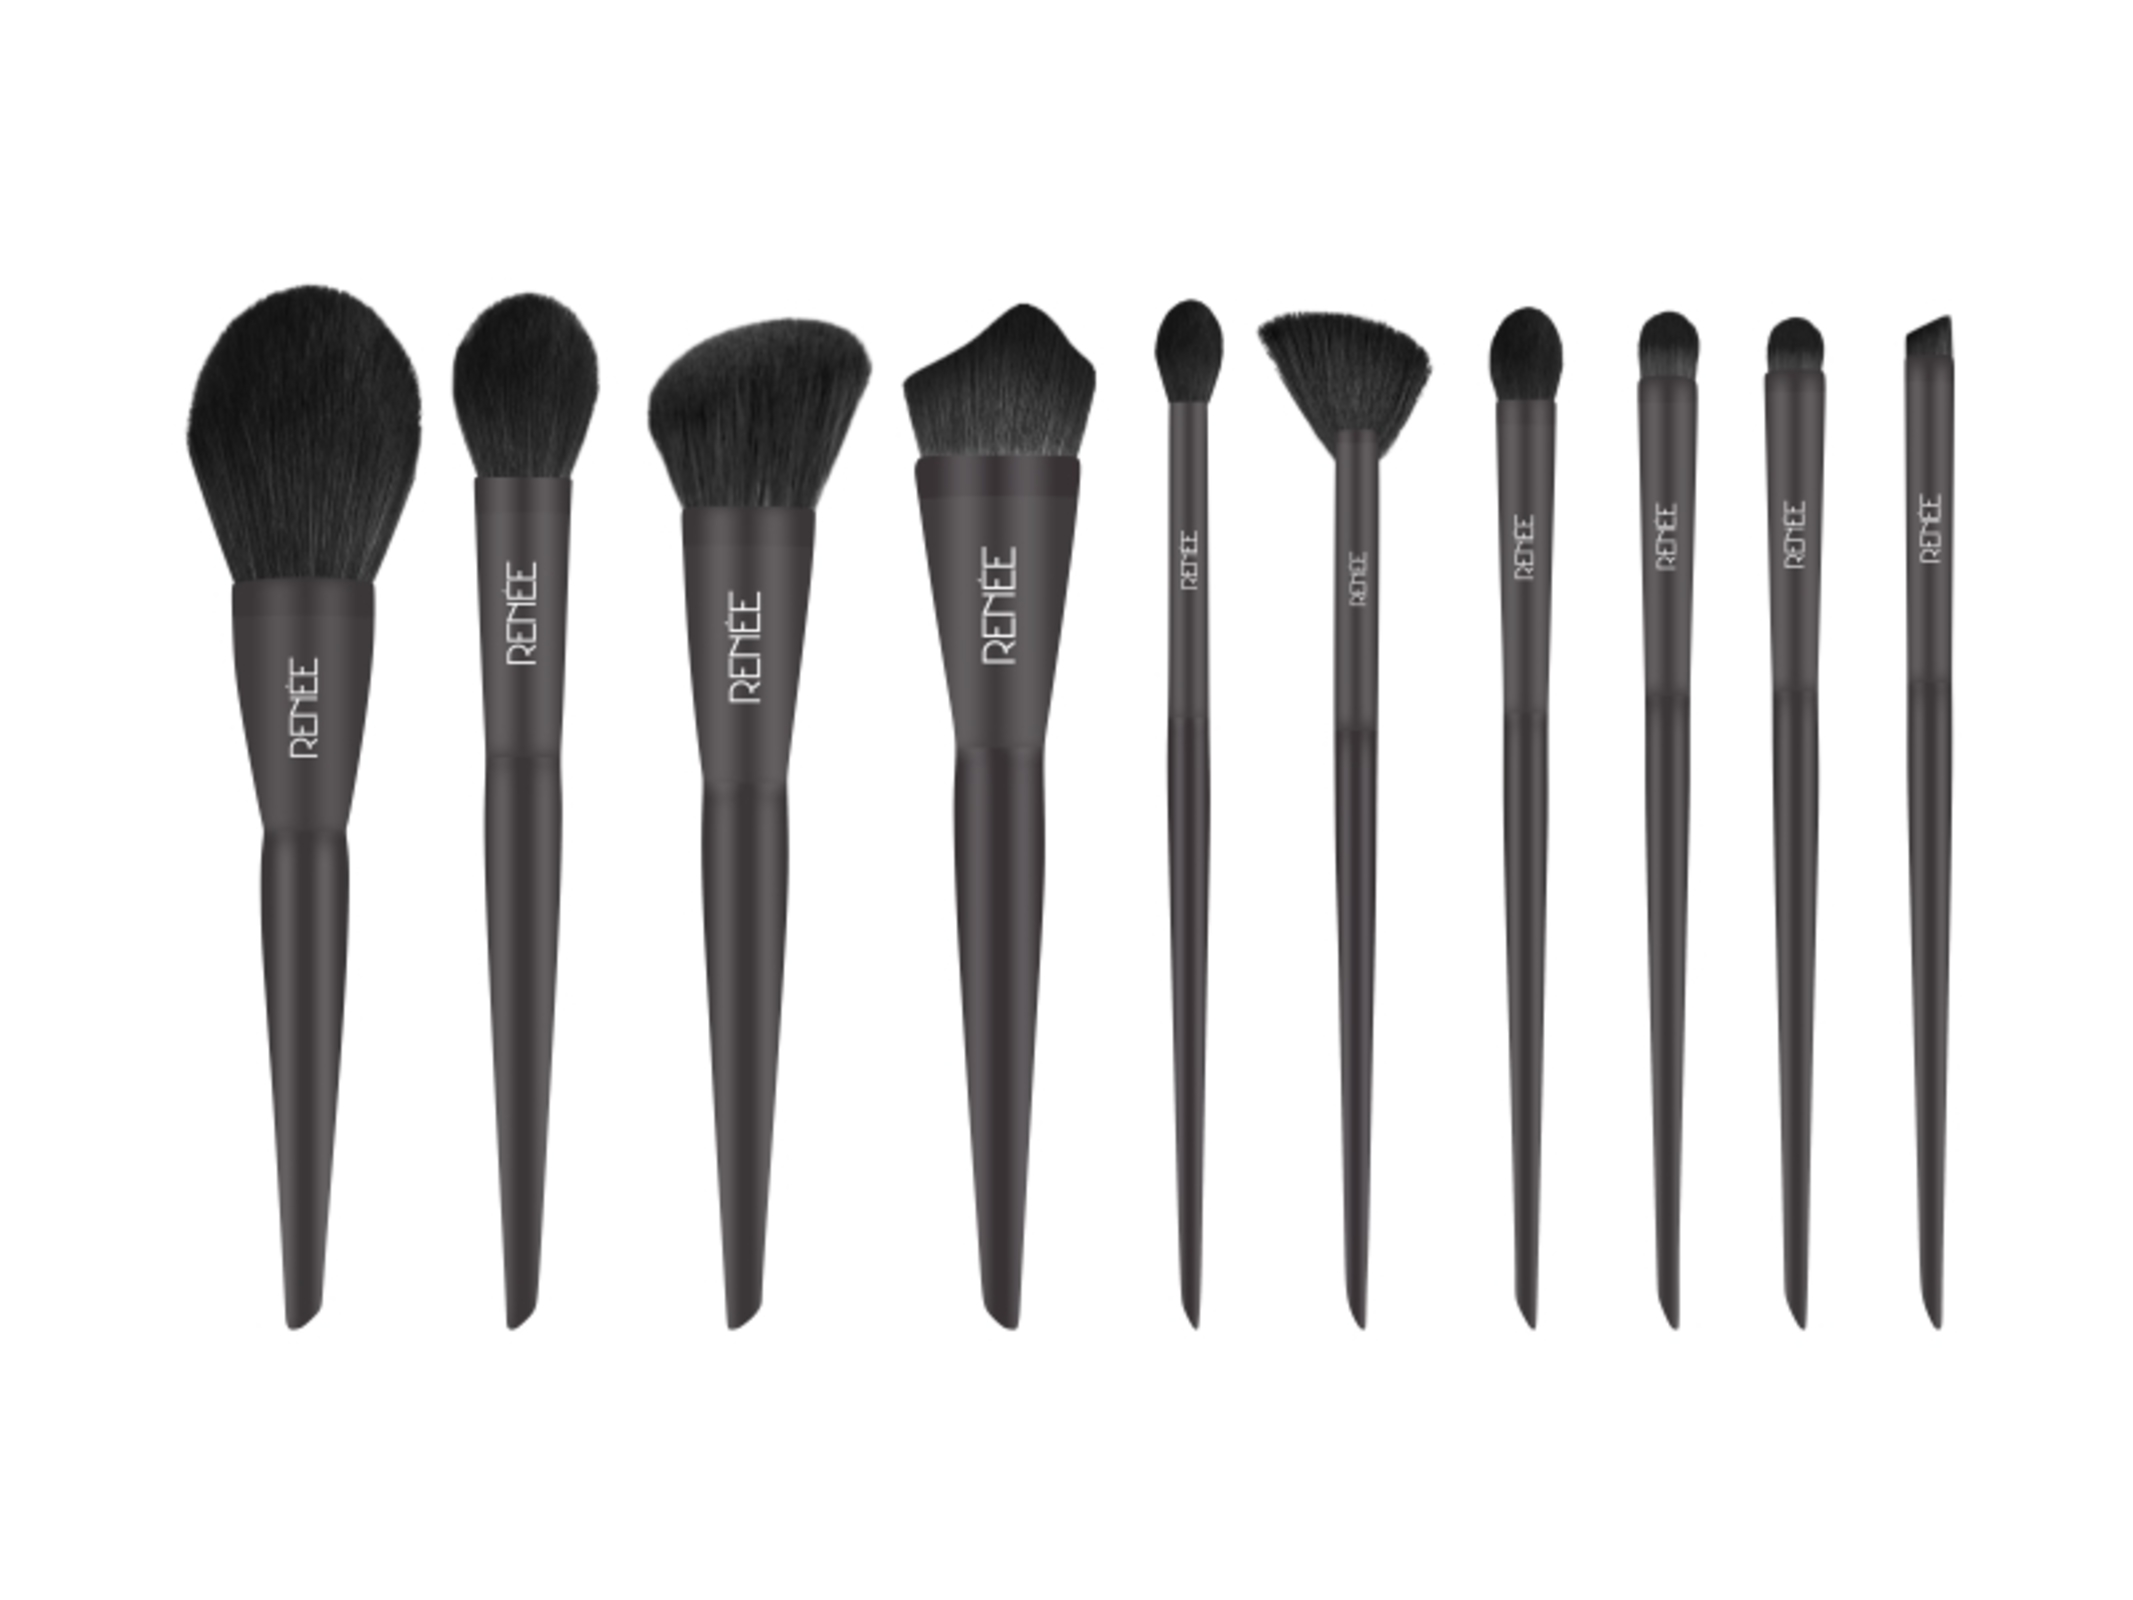 RENEE Brushes (Set of 10)